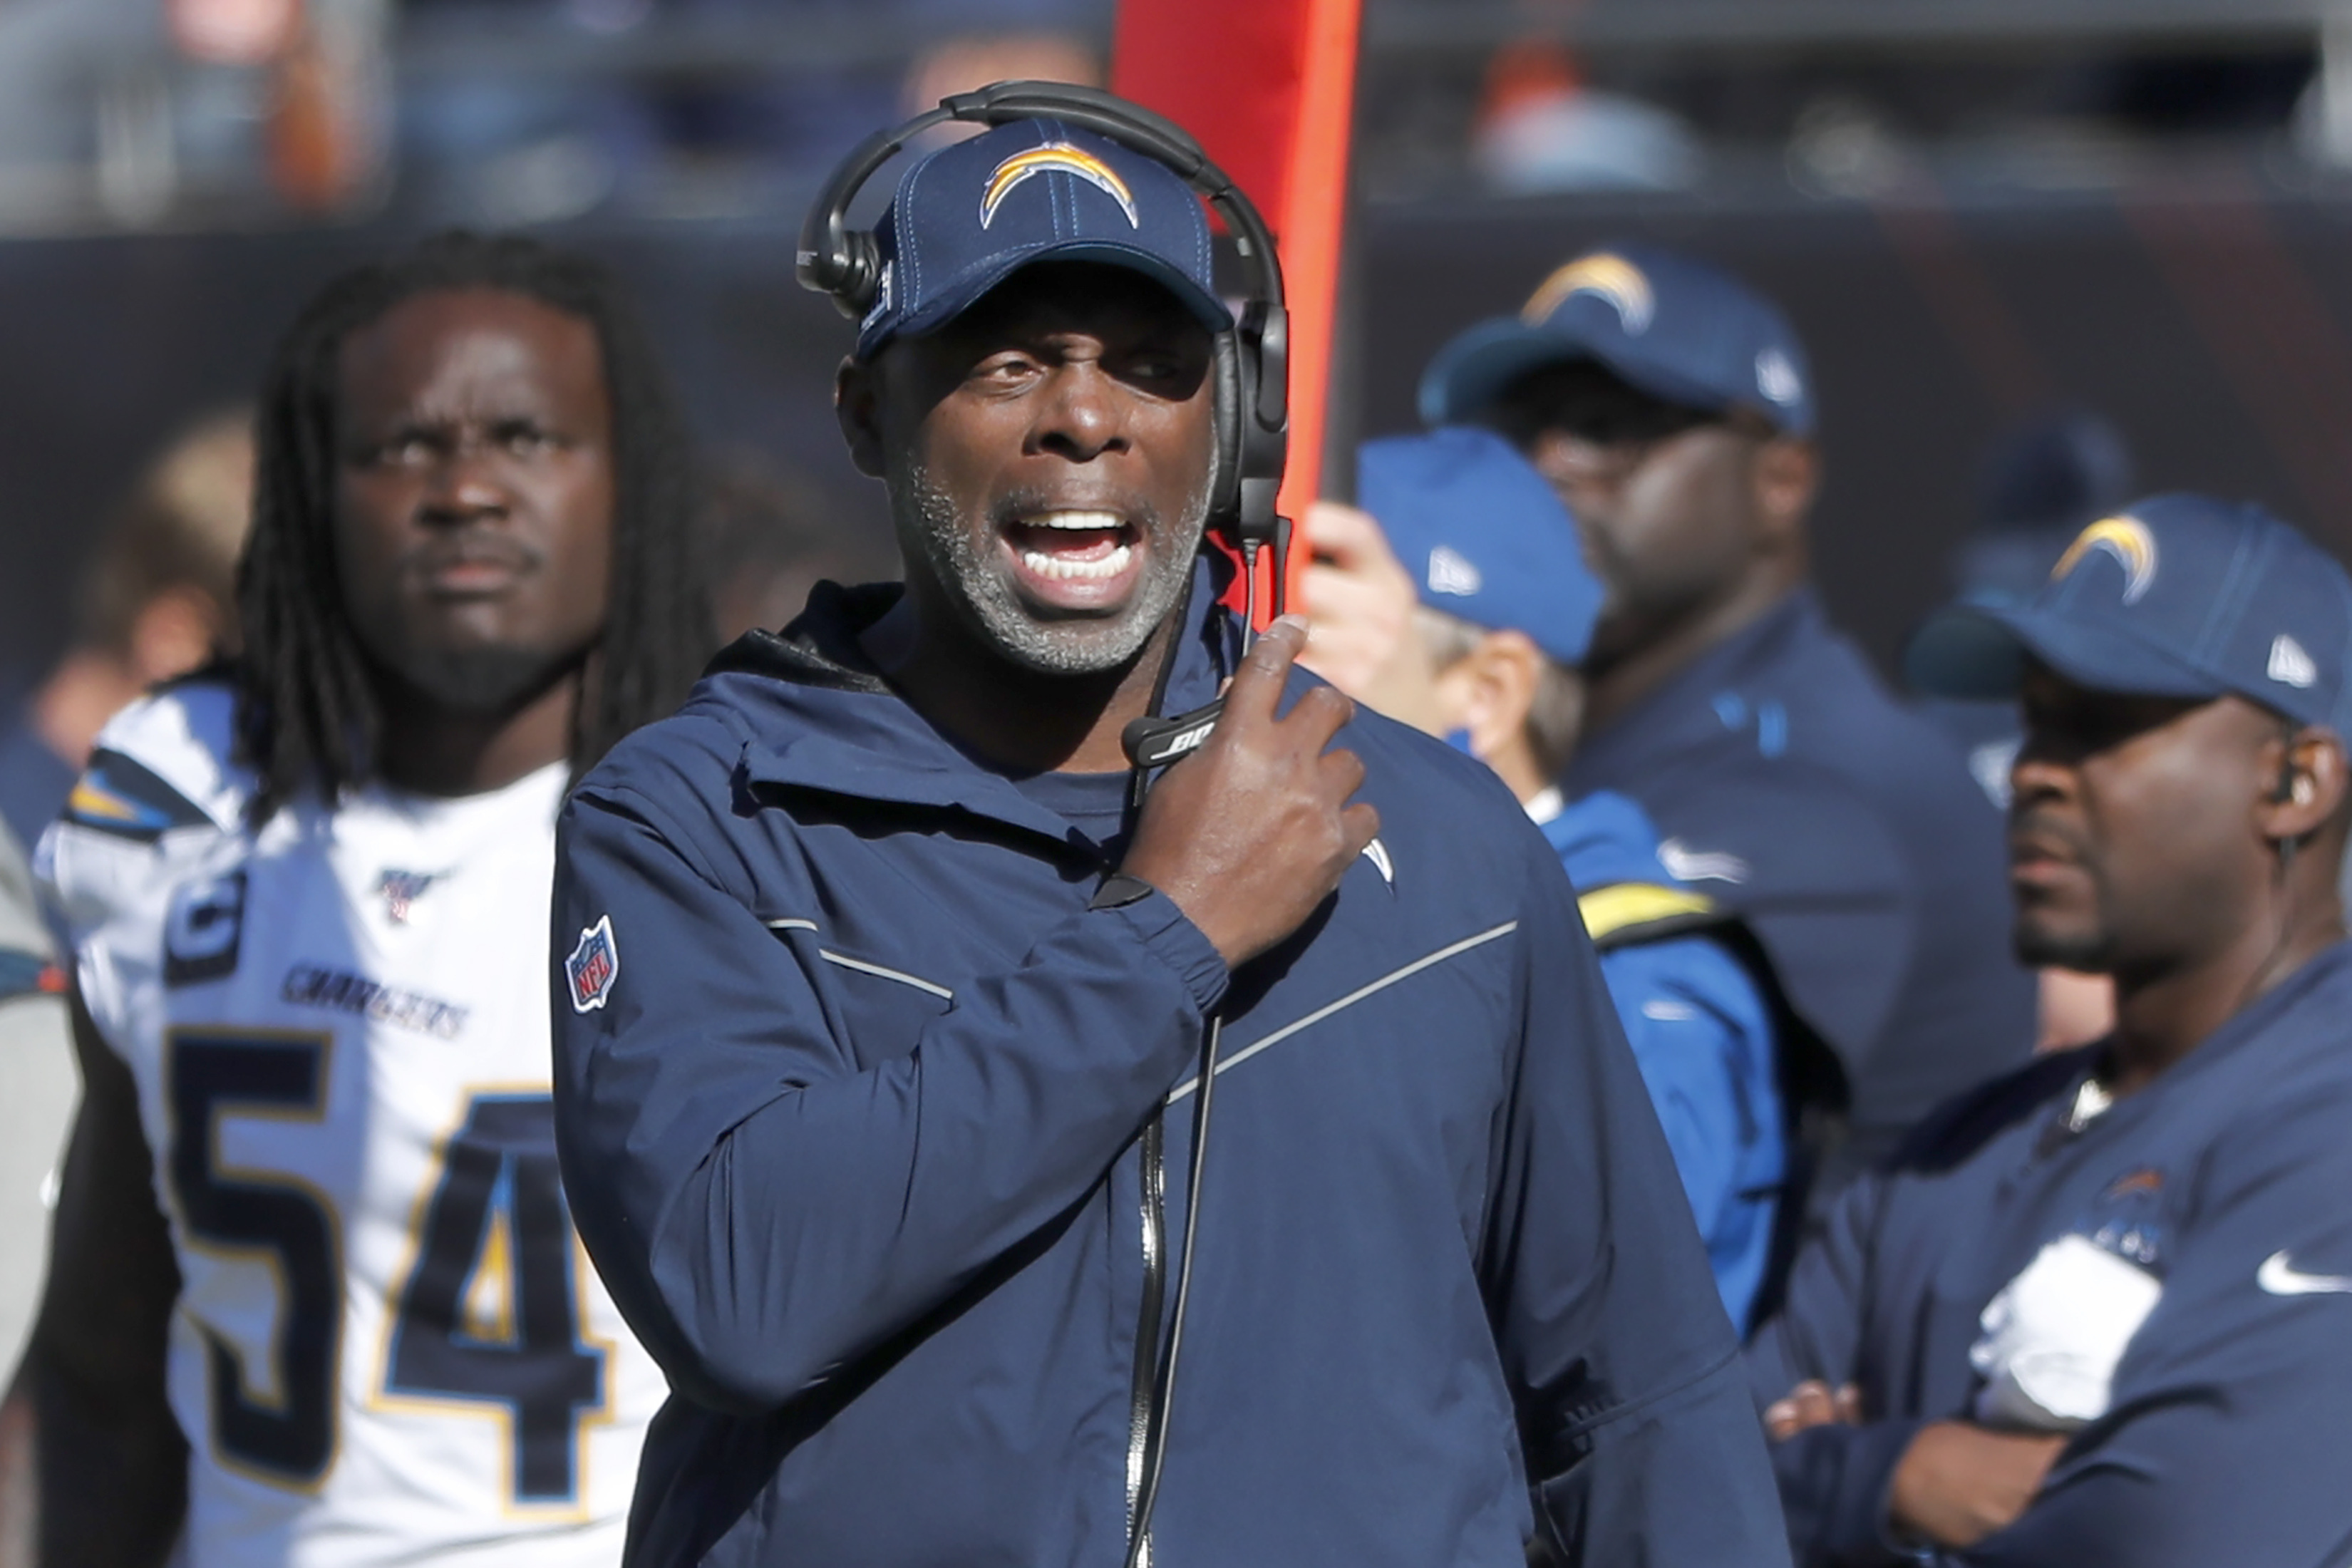 Los Angeles Chargers head coach Anthony Lynn: 'I expect to be the coach of  this team tomorrow' after humiliating 45-0 loss - oregonlive.com